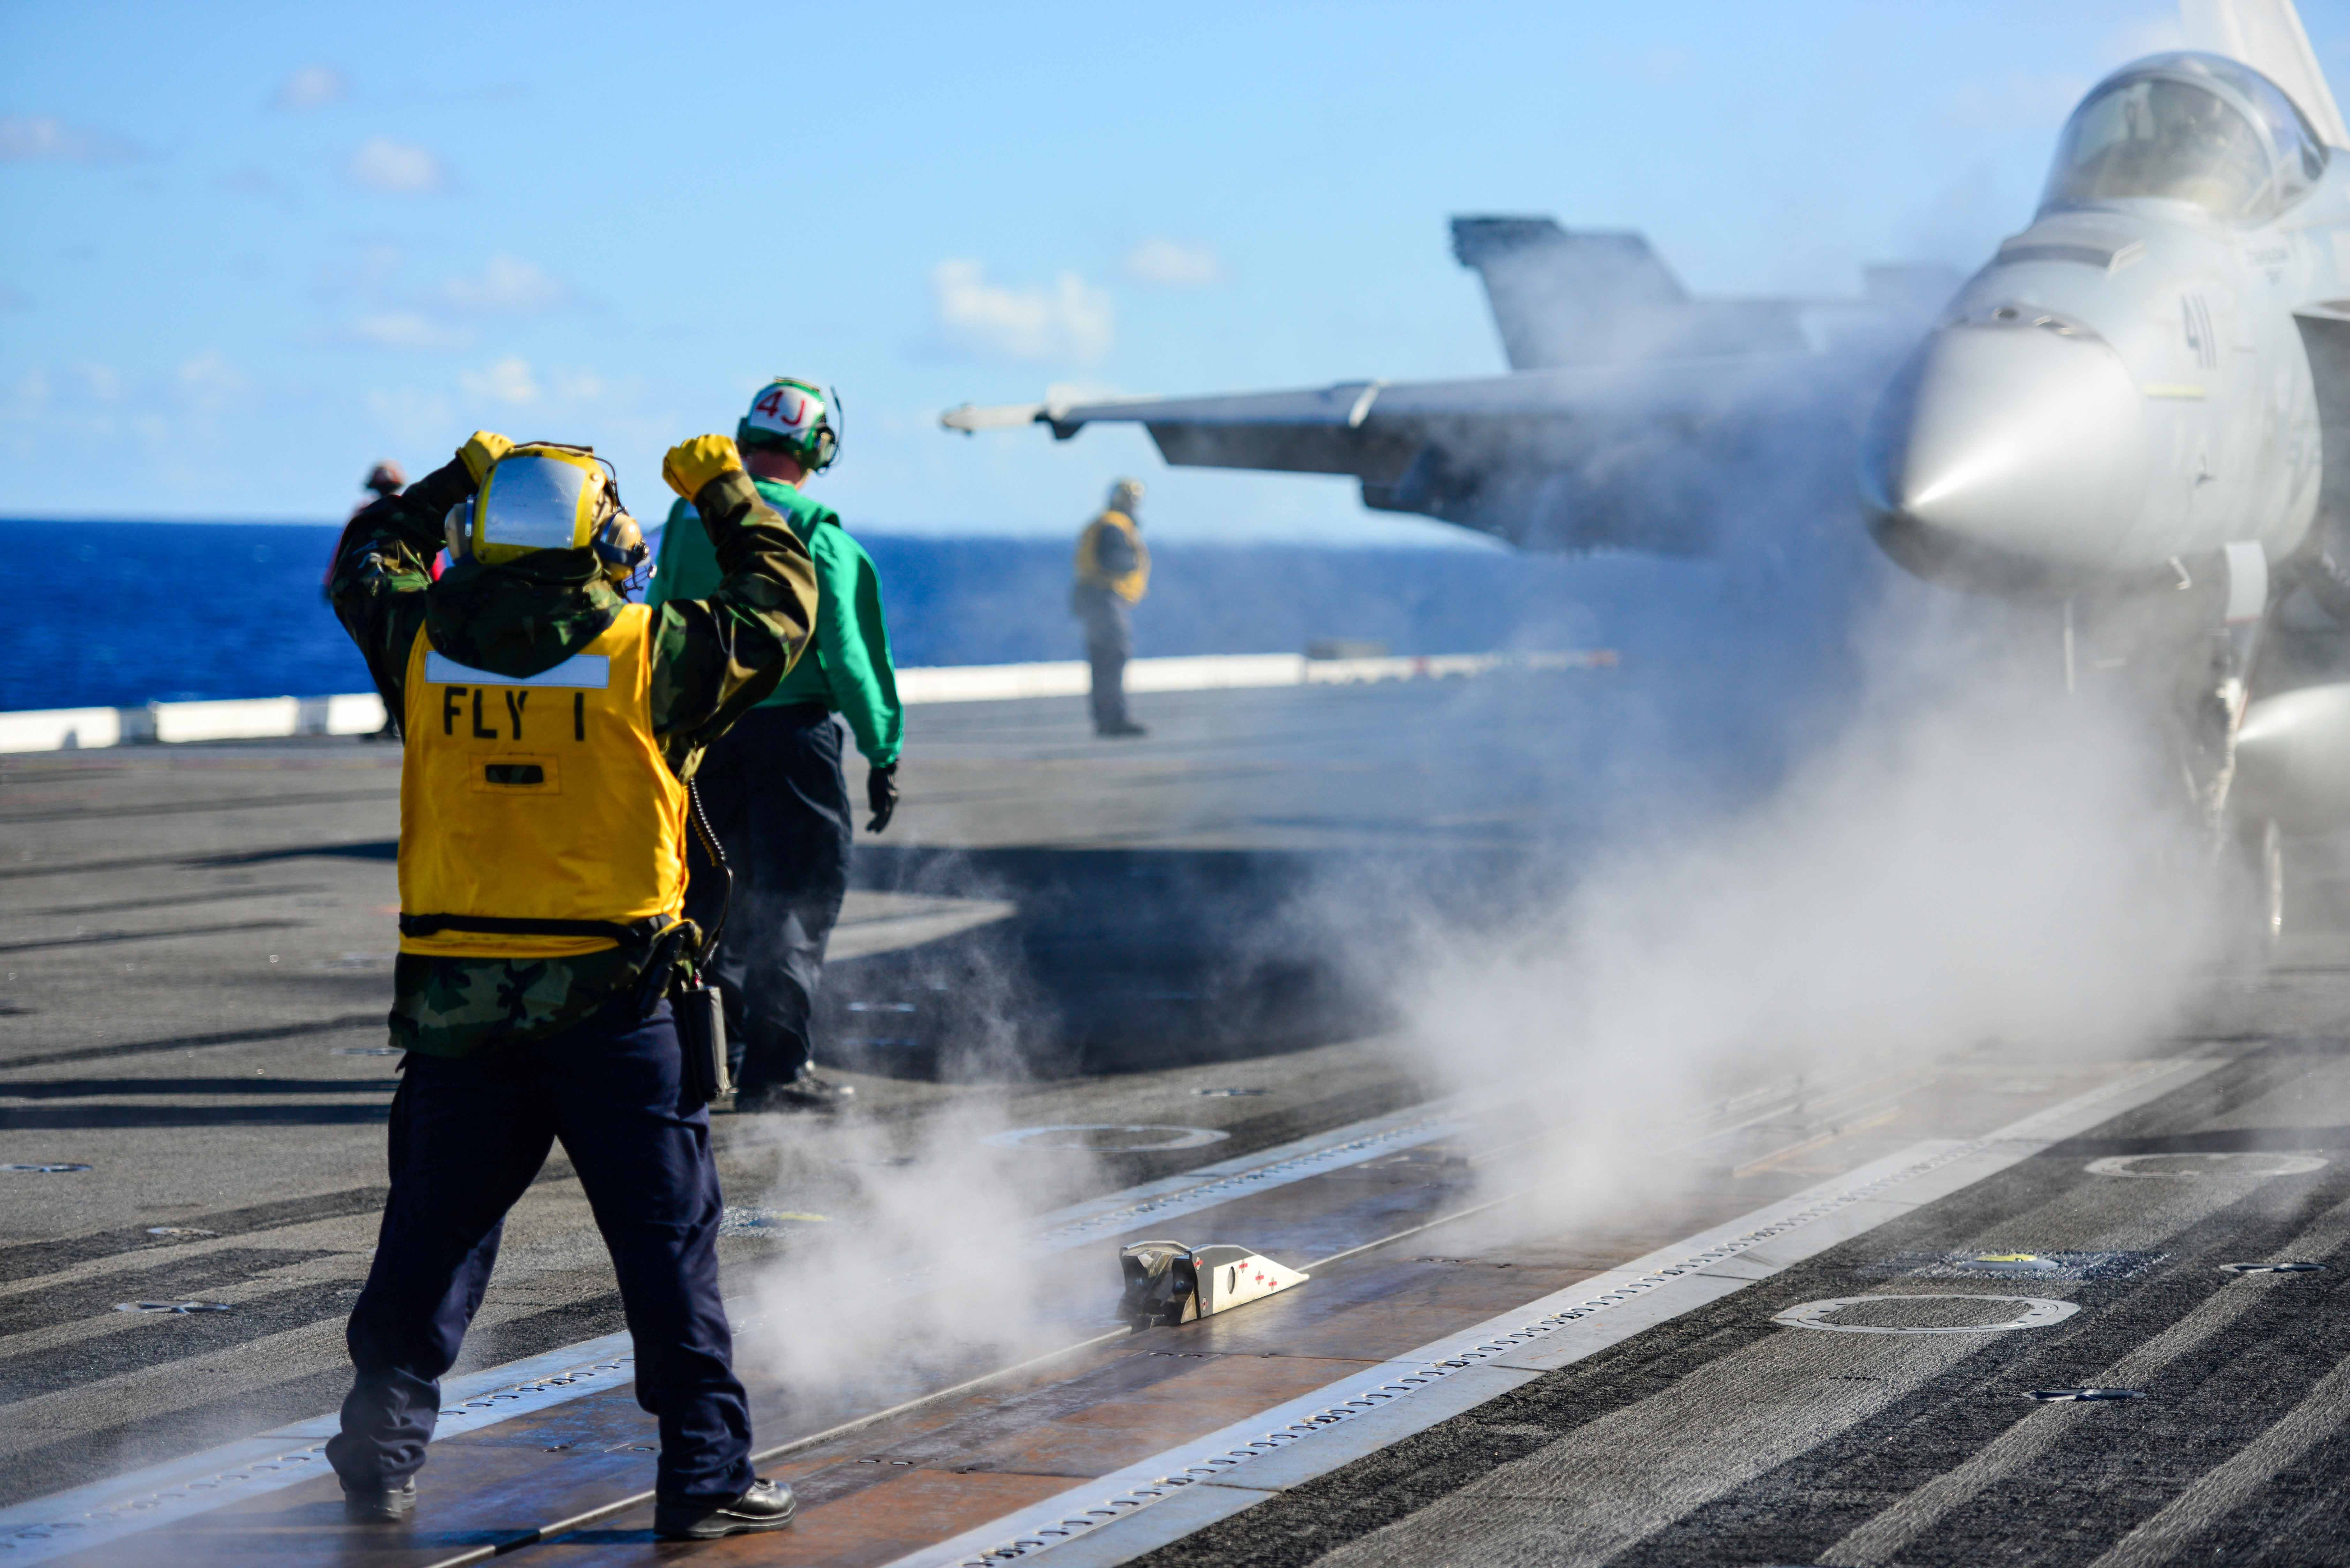 PACIFIC OCEAN (Dec. 13, 2014) Aviation Boatswain's Mate (Handling) 2nd Class Myron Aldan directs an aircraft onto a catapult on the flight deck of the Nimitz-class aircraft carrier USS John C. Stennis (CVN 74). John C. Stennis is undergoing an operational training period in preparation for future deployments. (U.S. Navy photo by Mass Communication Specialist 3rd Class Ignacio D. Perez/Released)